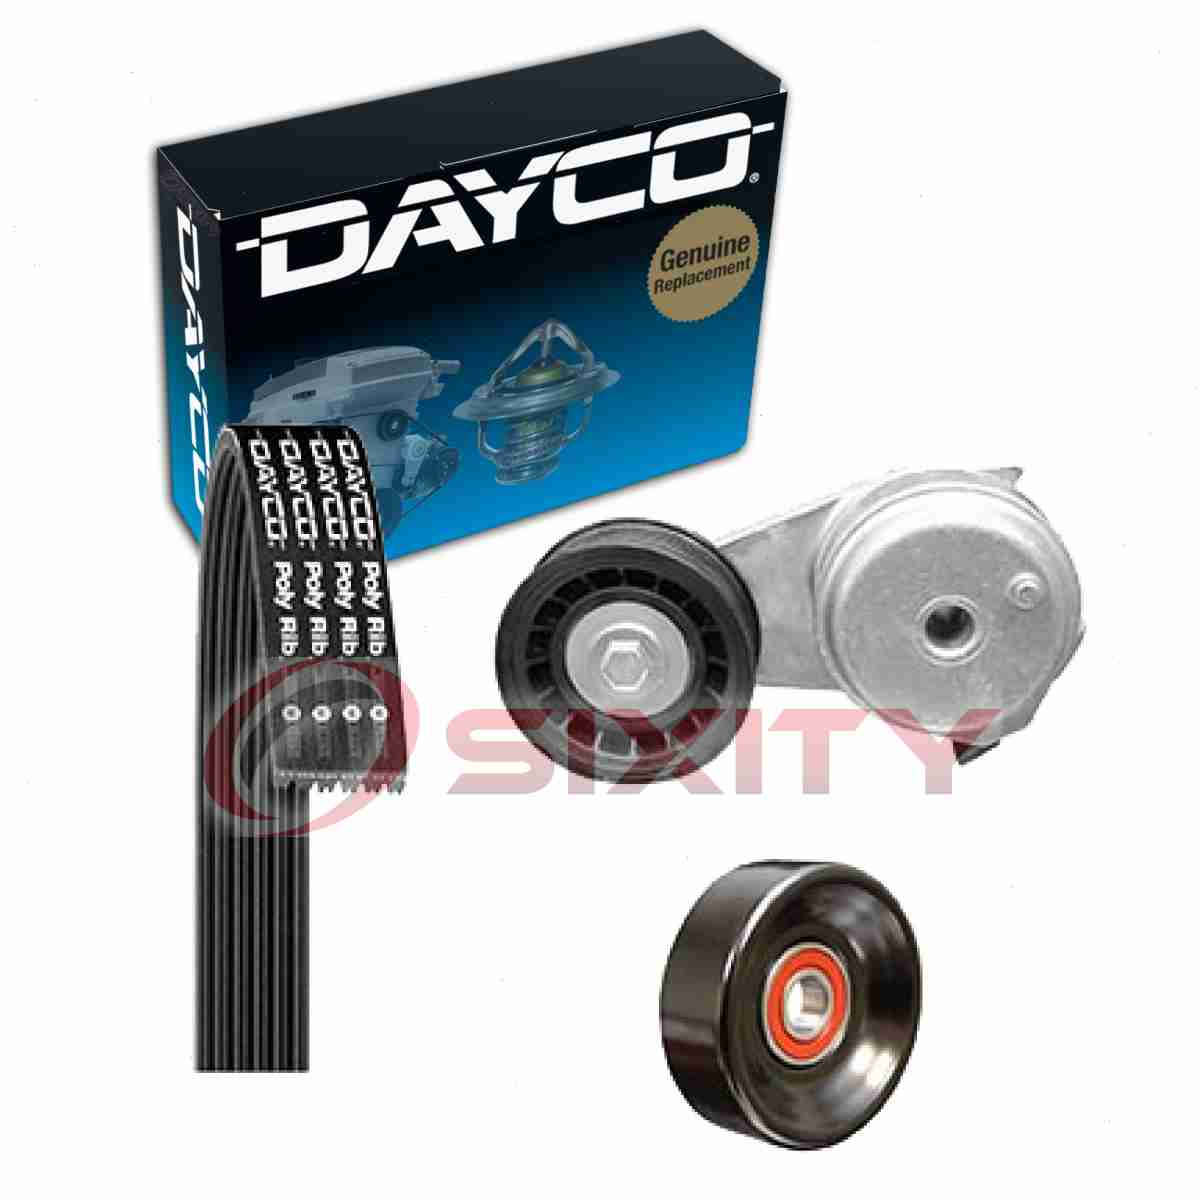 Serpentine Belt Drive Component Kit Dayco fits 05-10 Ford Mustang 4.0L-V6